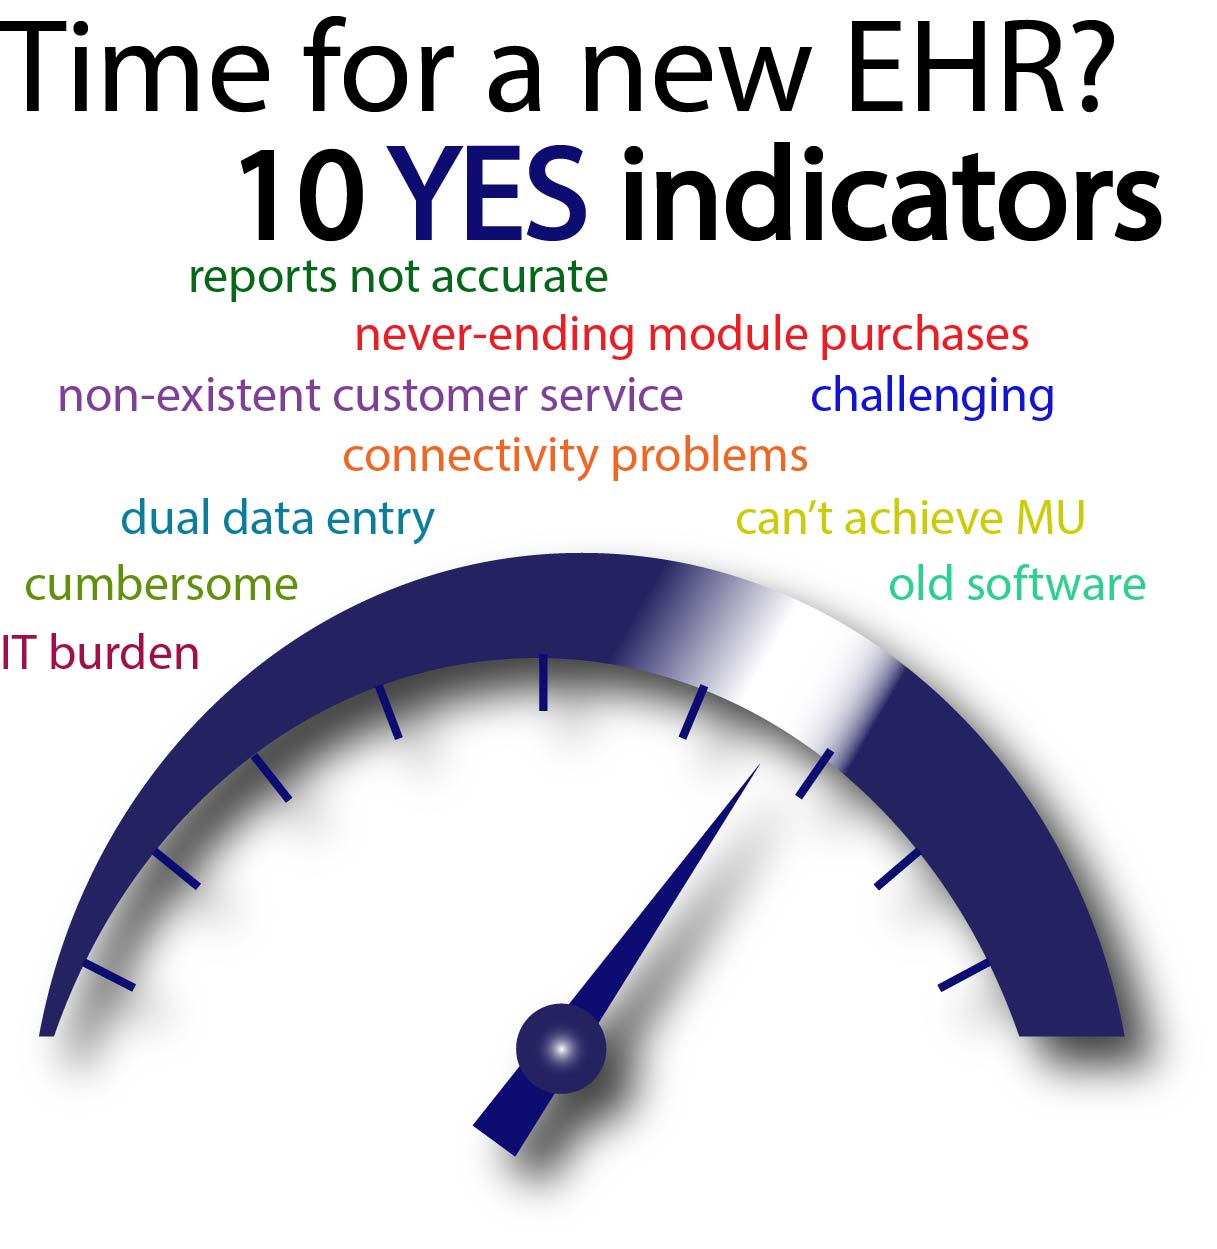 Ten Indicators That You Should Replace and Modernize Your EHR System